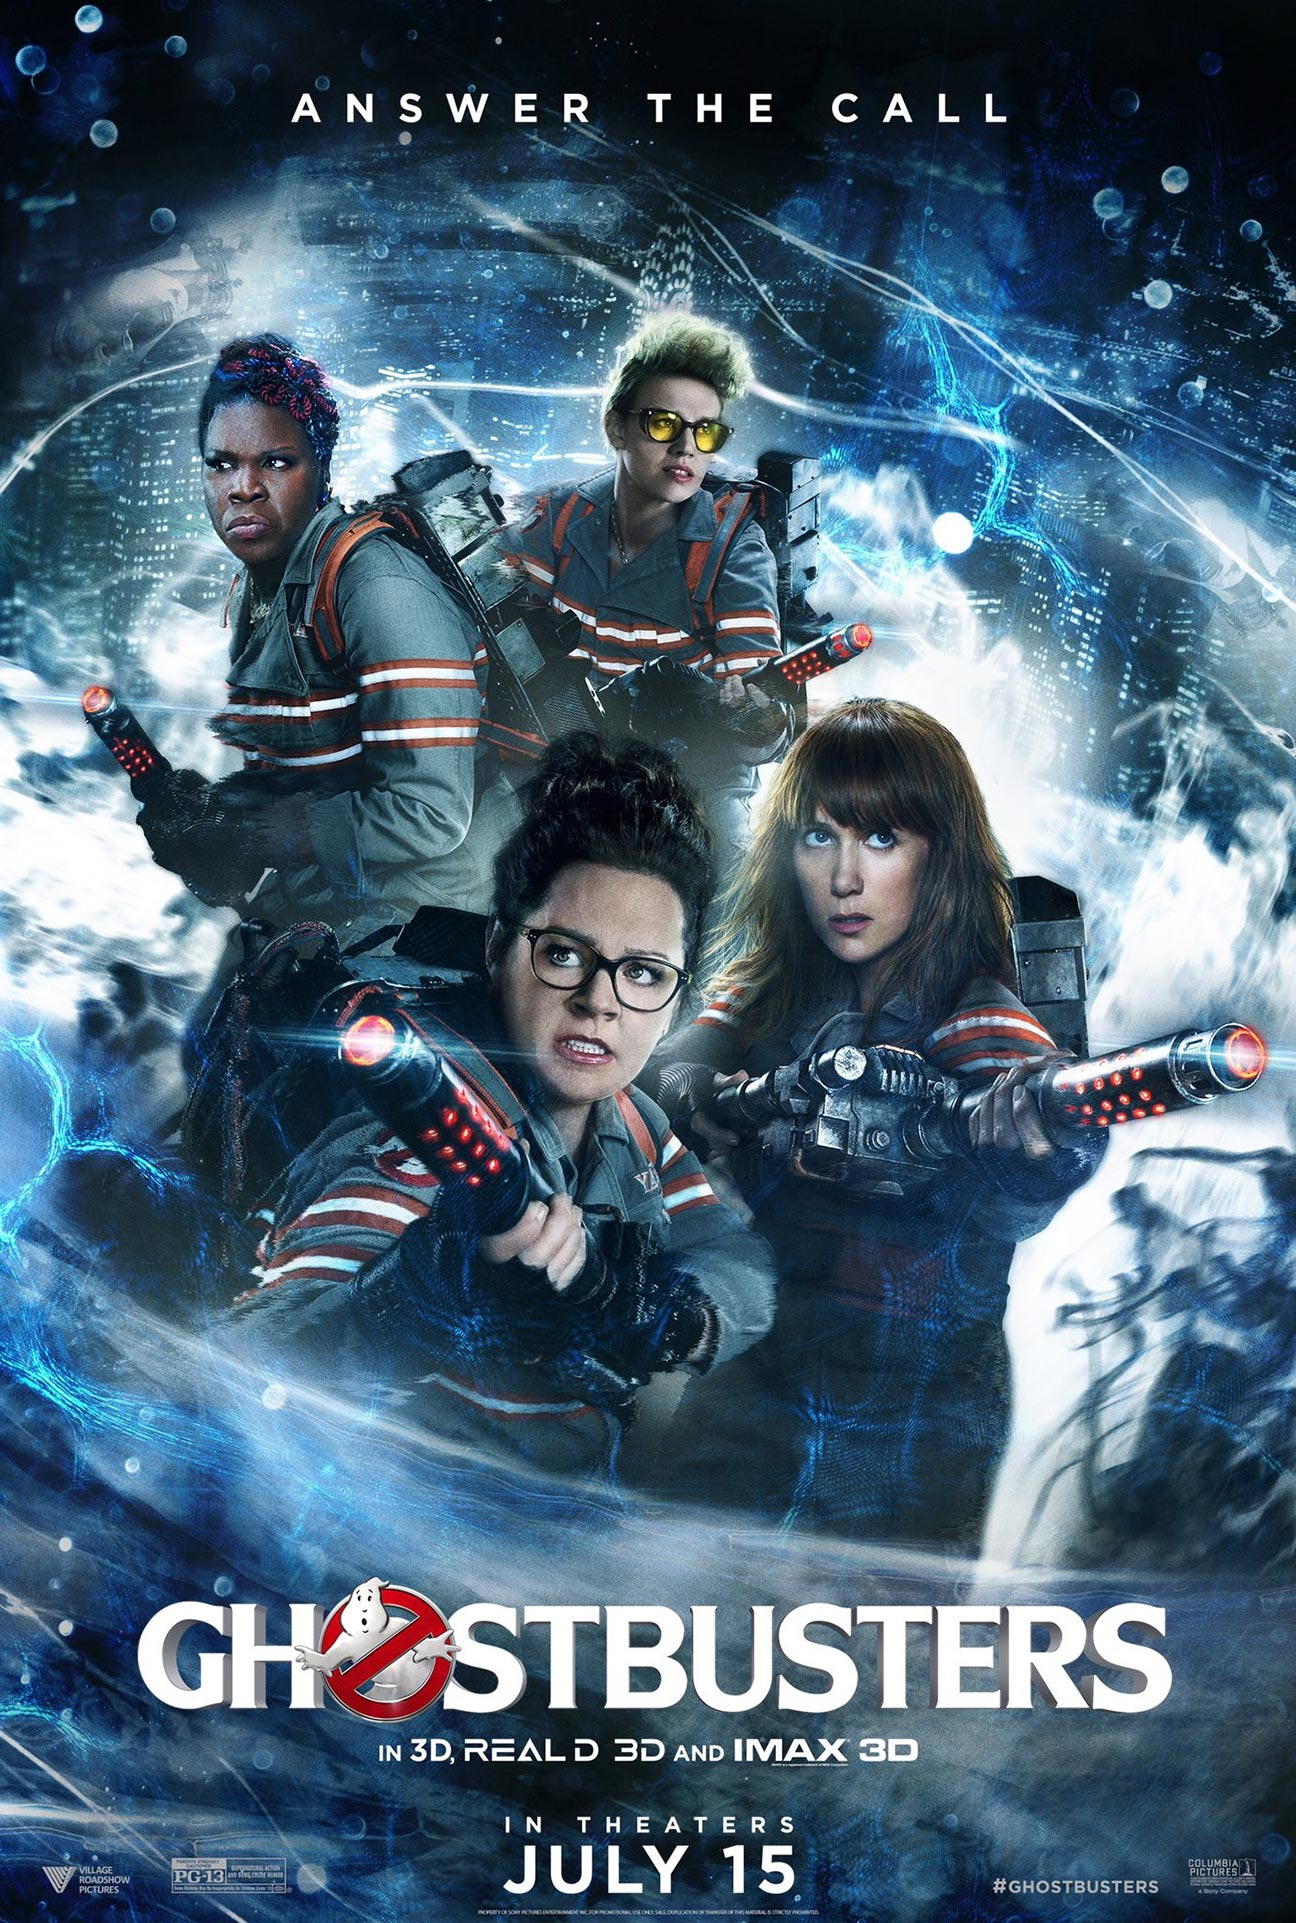 ghostbusters 2016 poster 1   trailer addict